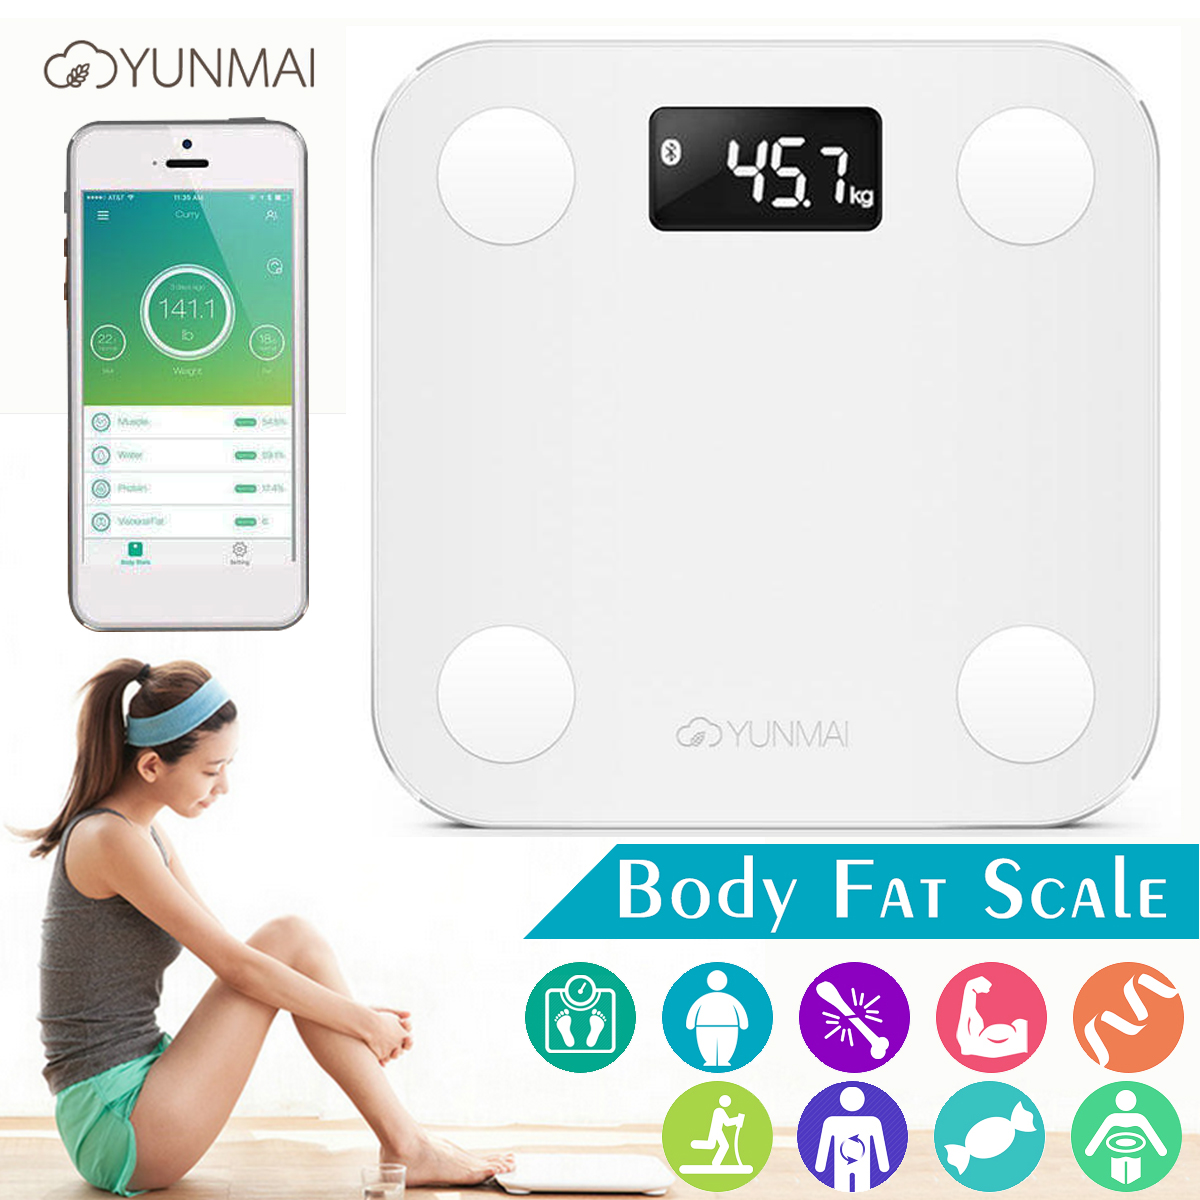 Yunmai 150kg Bathroom Scales bluetooth LED Smart Body Fat Weight Scale Monitor BMI & BMR Analyzer App for IOS Android(China)